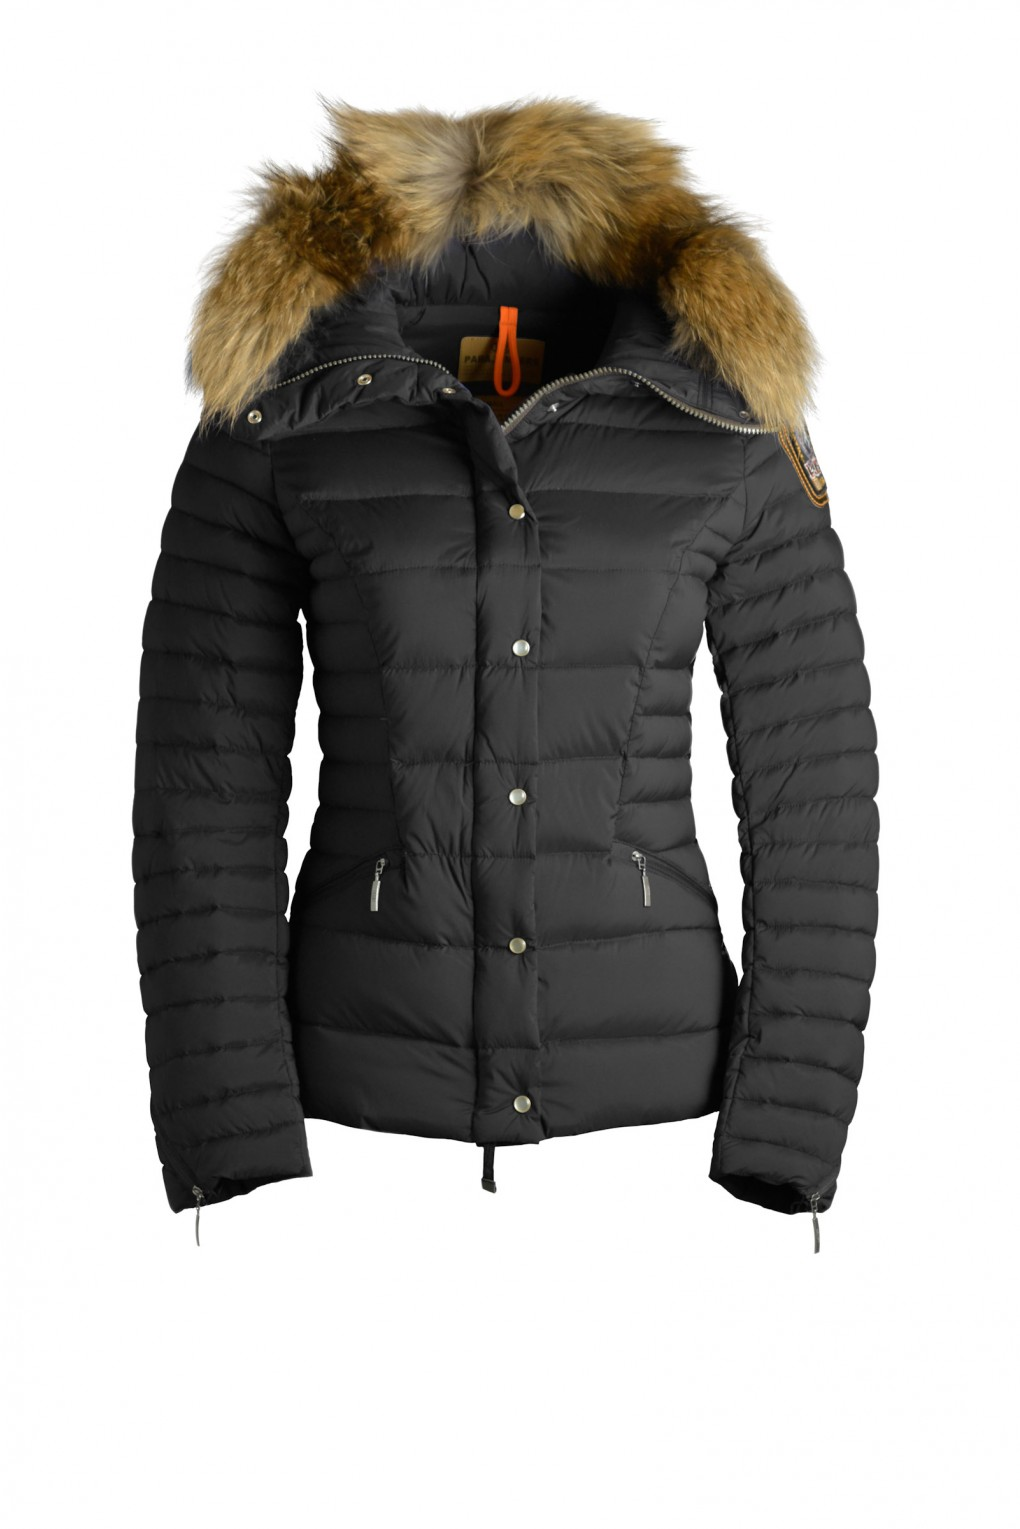 parajumpers MARLENE woman outerwear Black